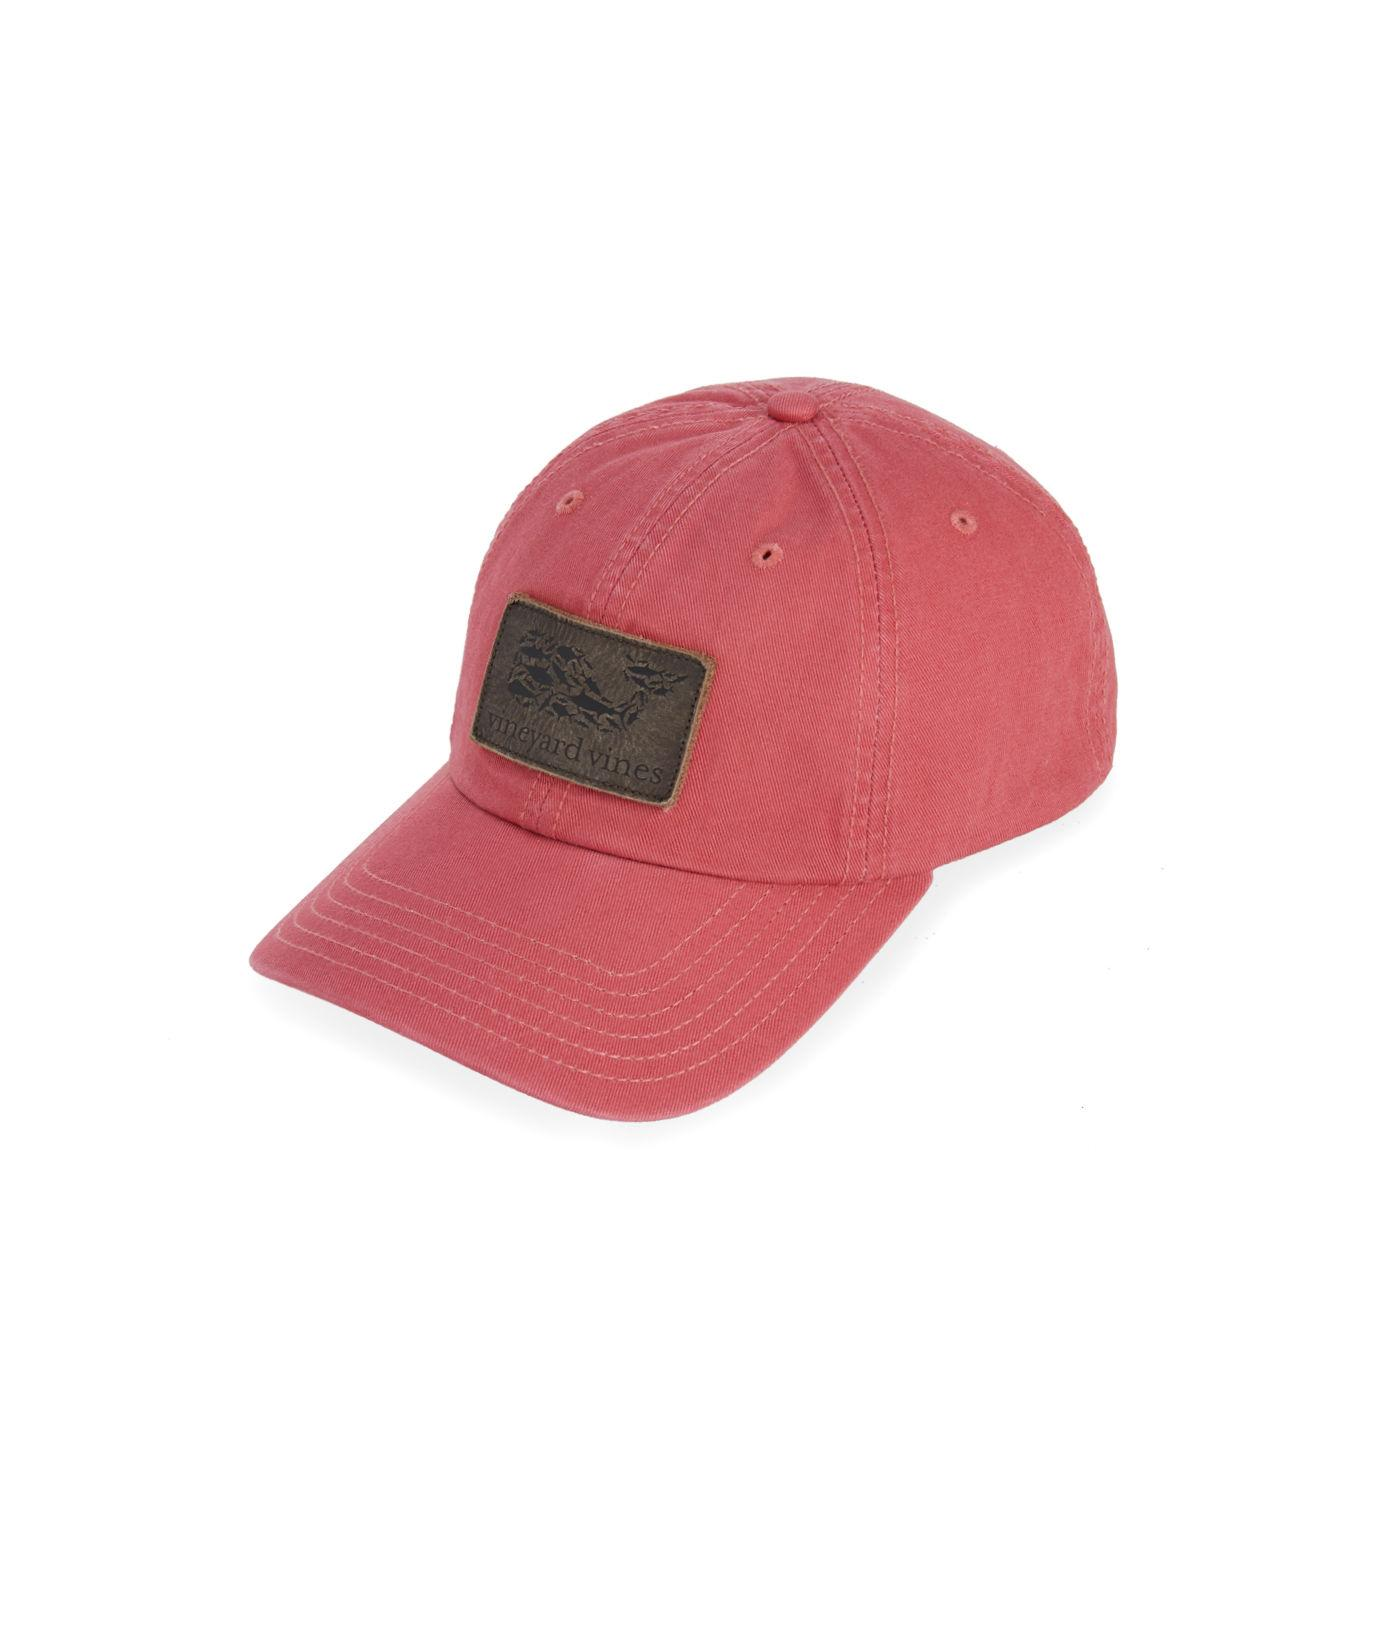 Vineyard Vines - Red Leather Whale Fill Logo Patch Twill Baseball Hat for  Men - Lyst. View fullscreen c7ae1d9fa626